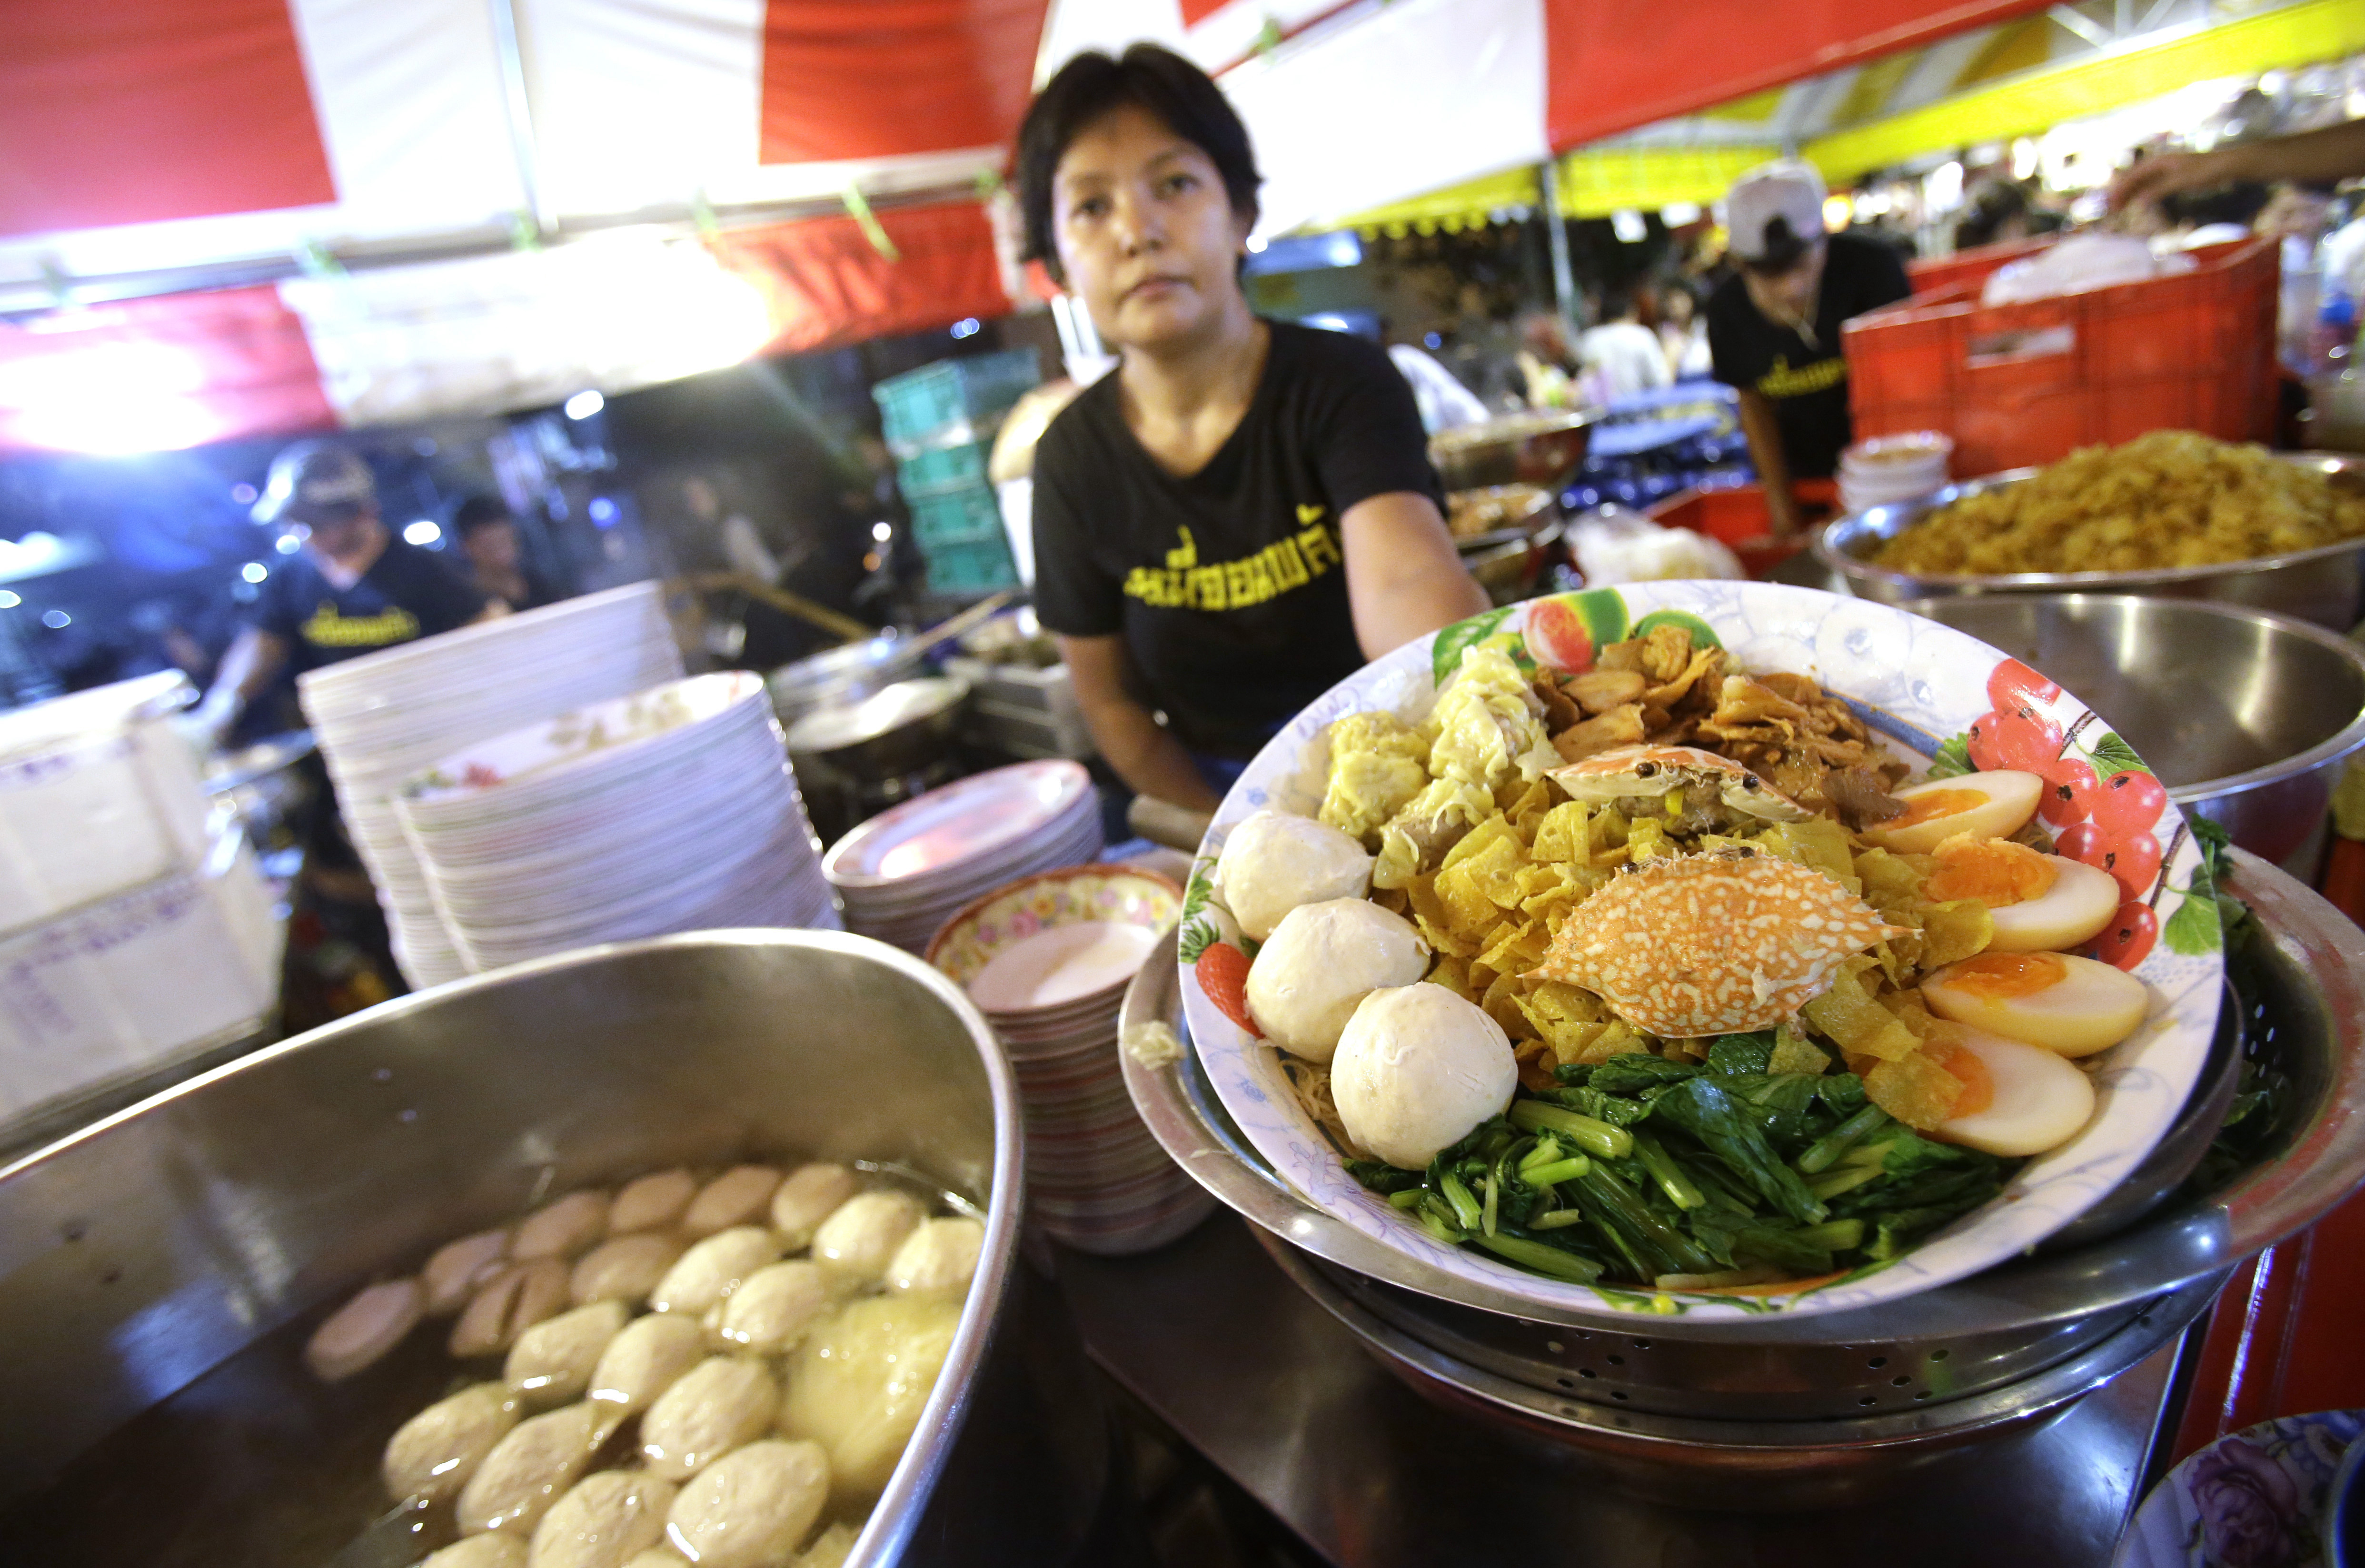 Discussion on this topic: 8 Food Rules to Break, 8-food-rules-to-break/